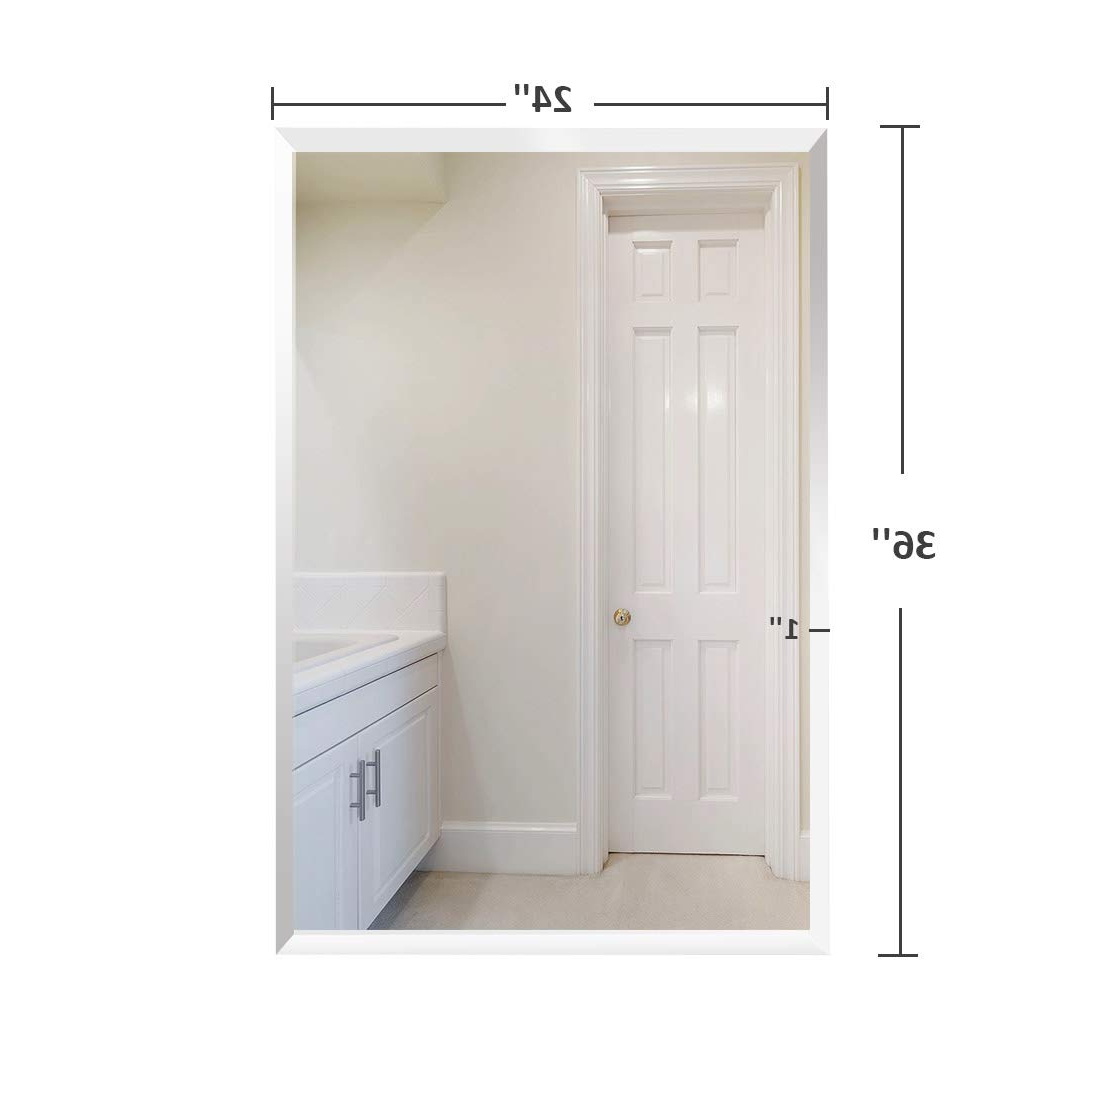 """Most Popular Large Wall Mirrors For Bathroom Throughout Bathroom Mirror Wall Mounted, Frameless Mirrors For Wall 24""""x36"""", Large  Wall Mirror, Gym Mirrors For Home Gym, Silver Backed Rectangular Glass  Panel  (View 14 of 20)"""